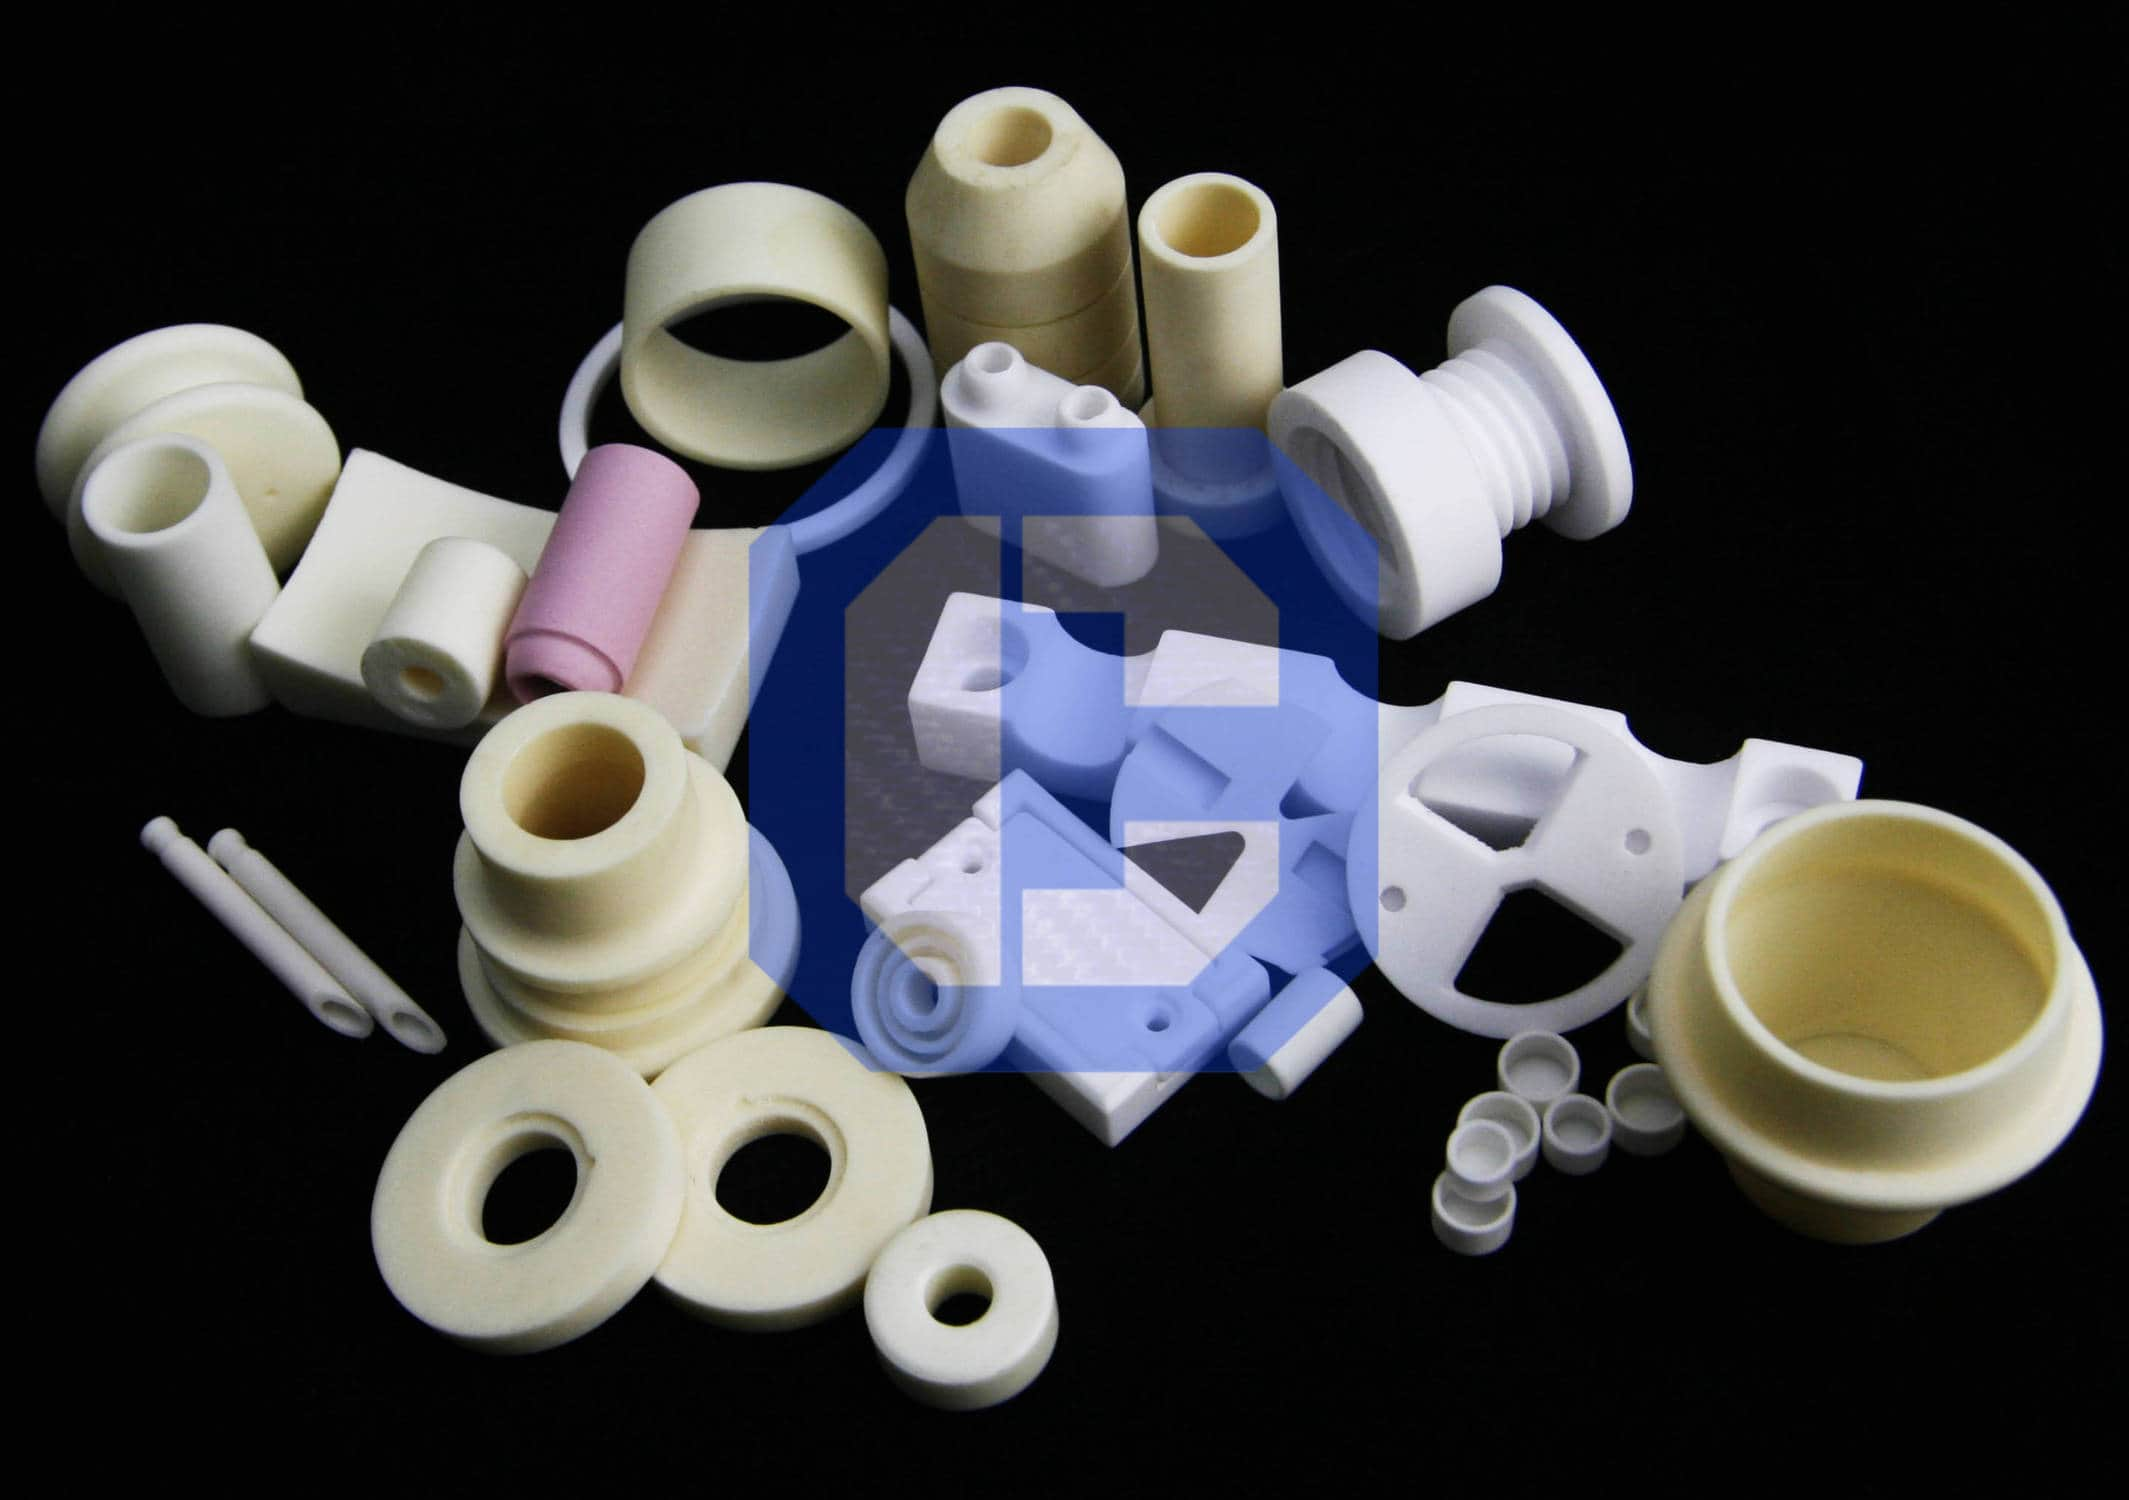 Alumina and performance Ceramics from CeraMaterials